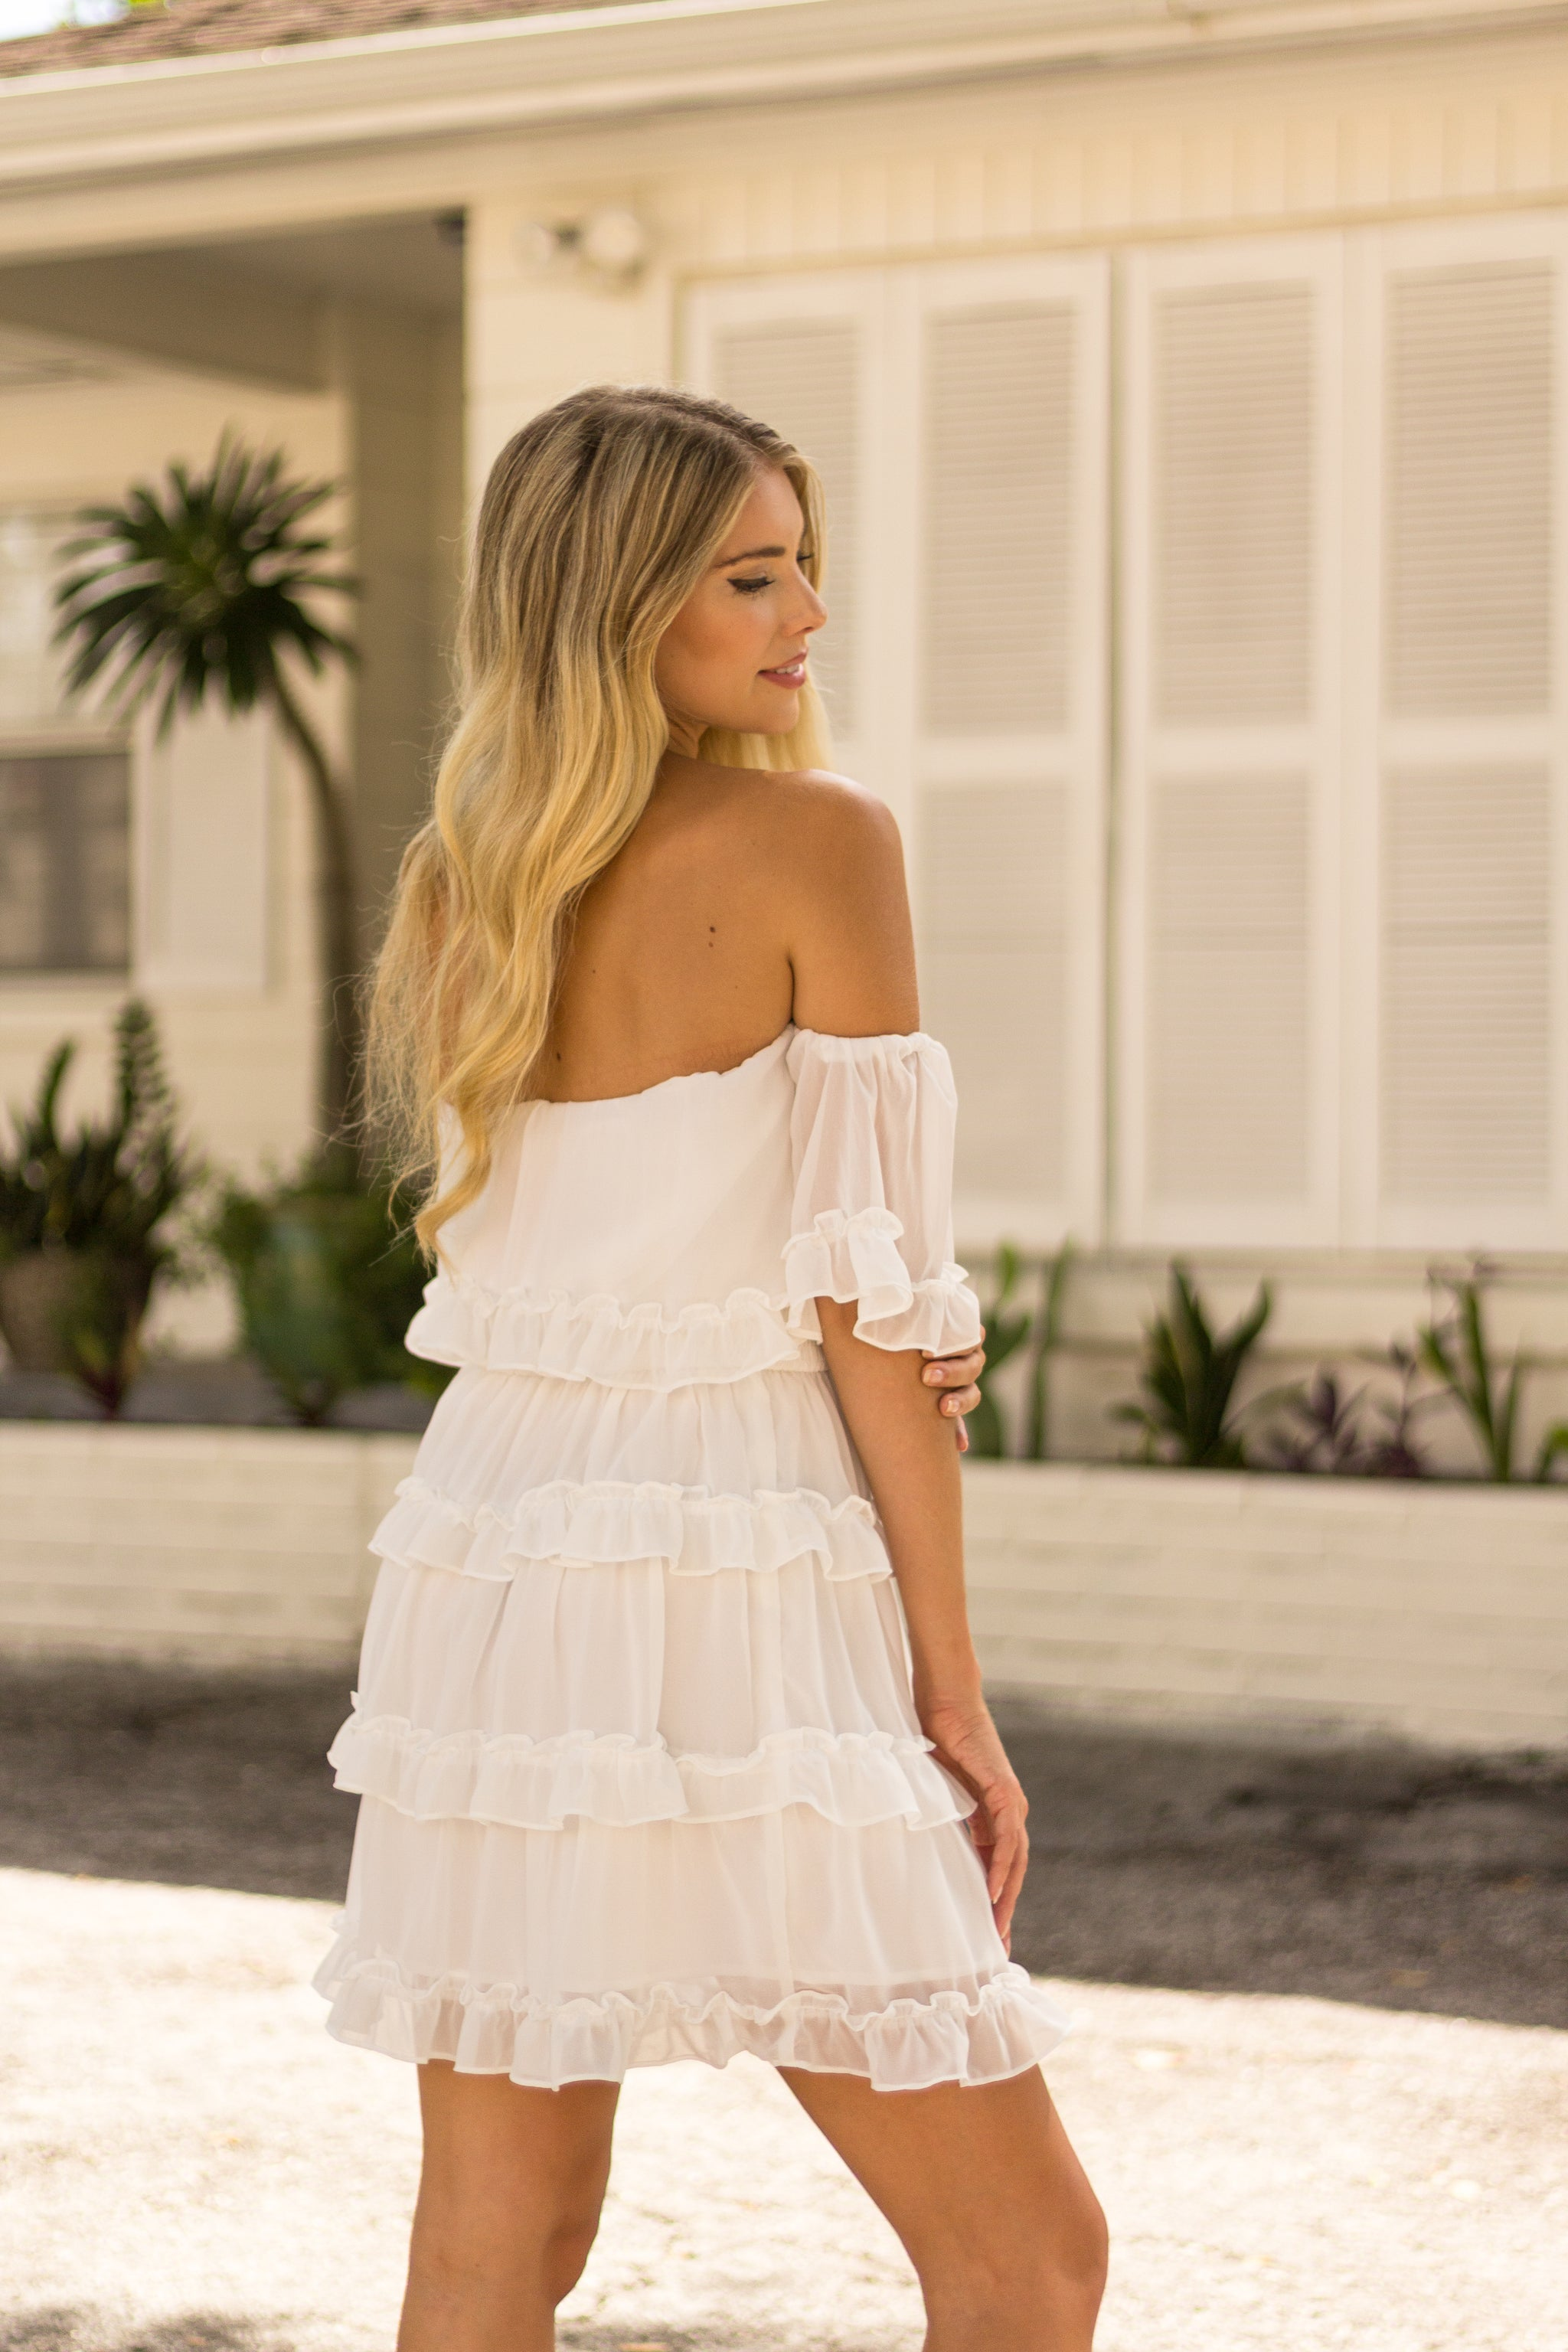 Short off-the-shoulder sleeves that attach onto a straight neckline on a relaxed flounce bodice with a ruffle trim meeting a smocked waistband down into a ruffled short a-line skirt.